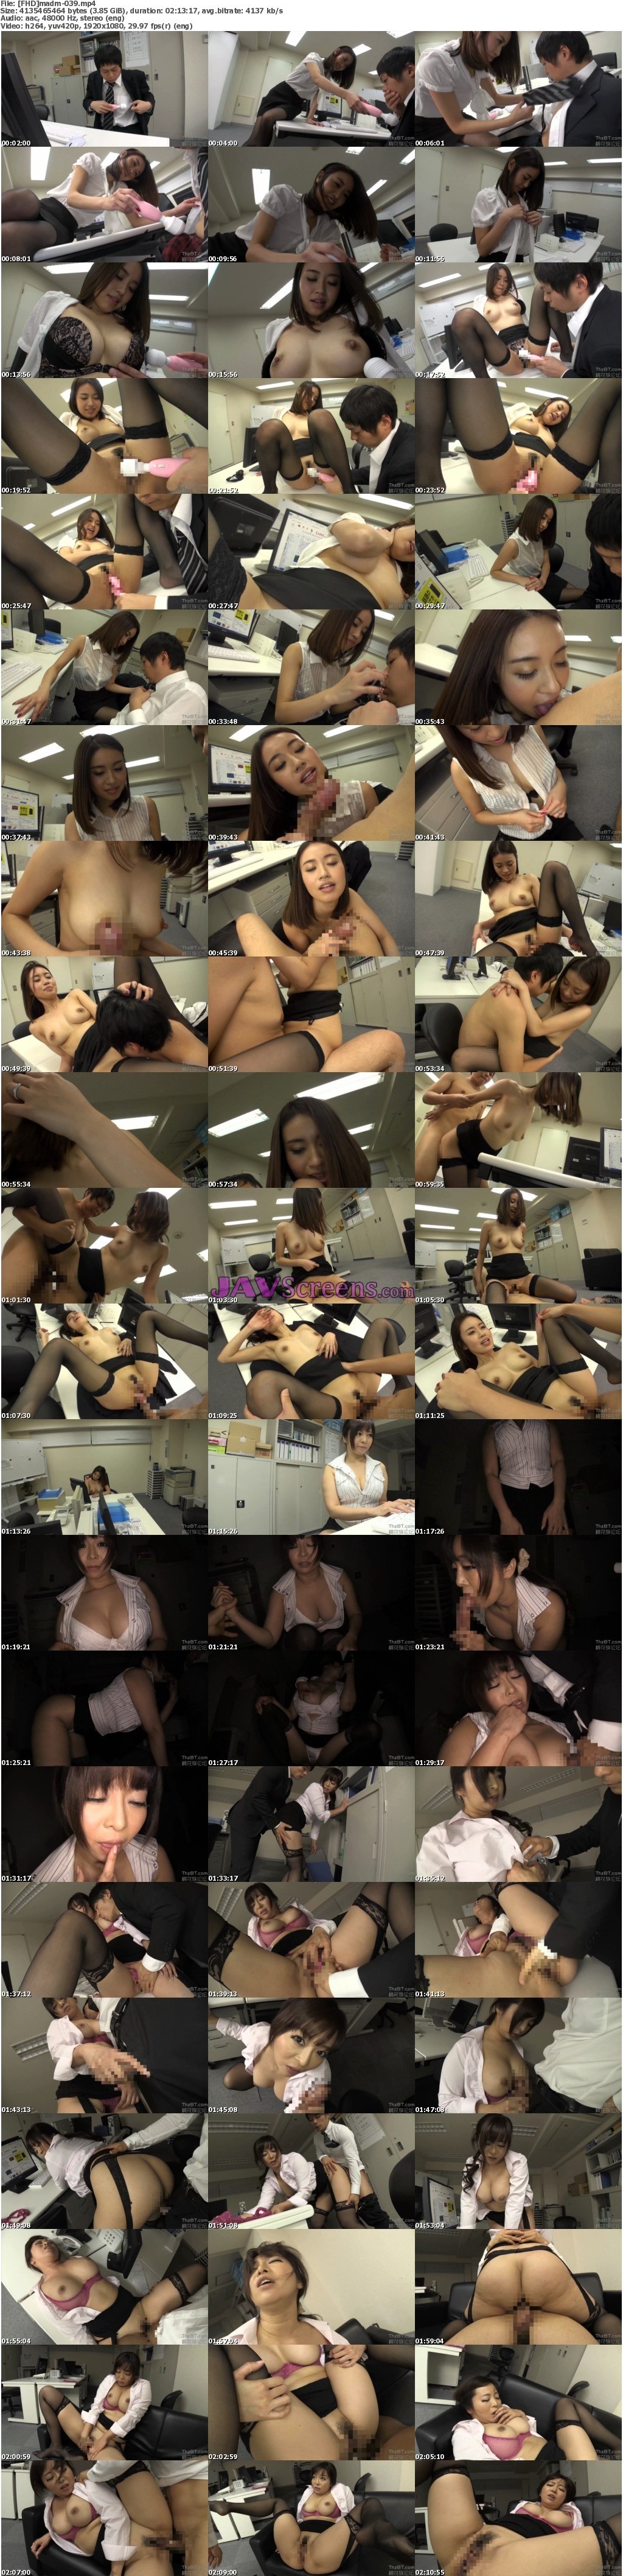 MADM-039.jpg - JAV Screenshot